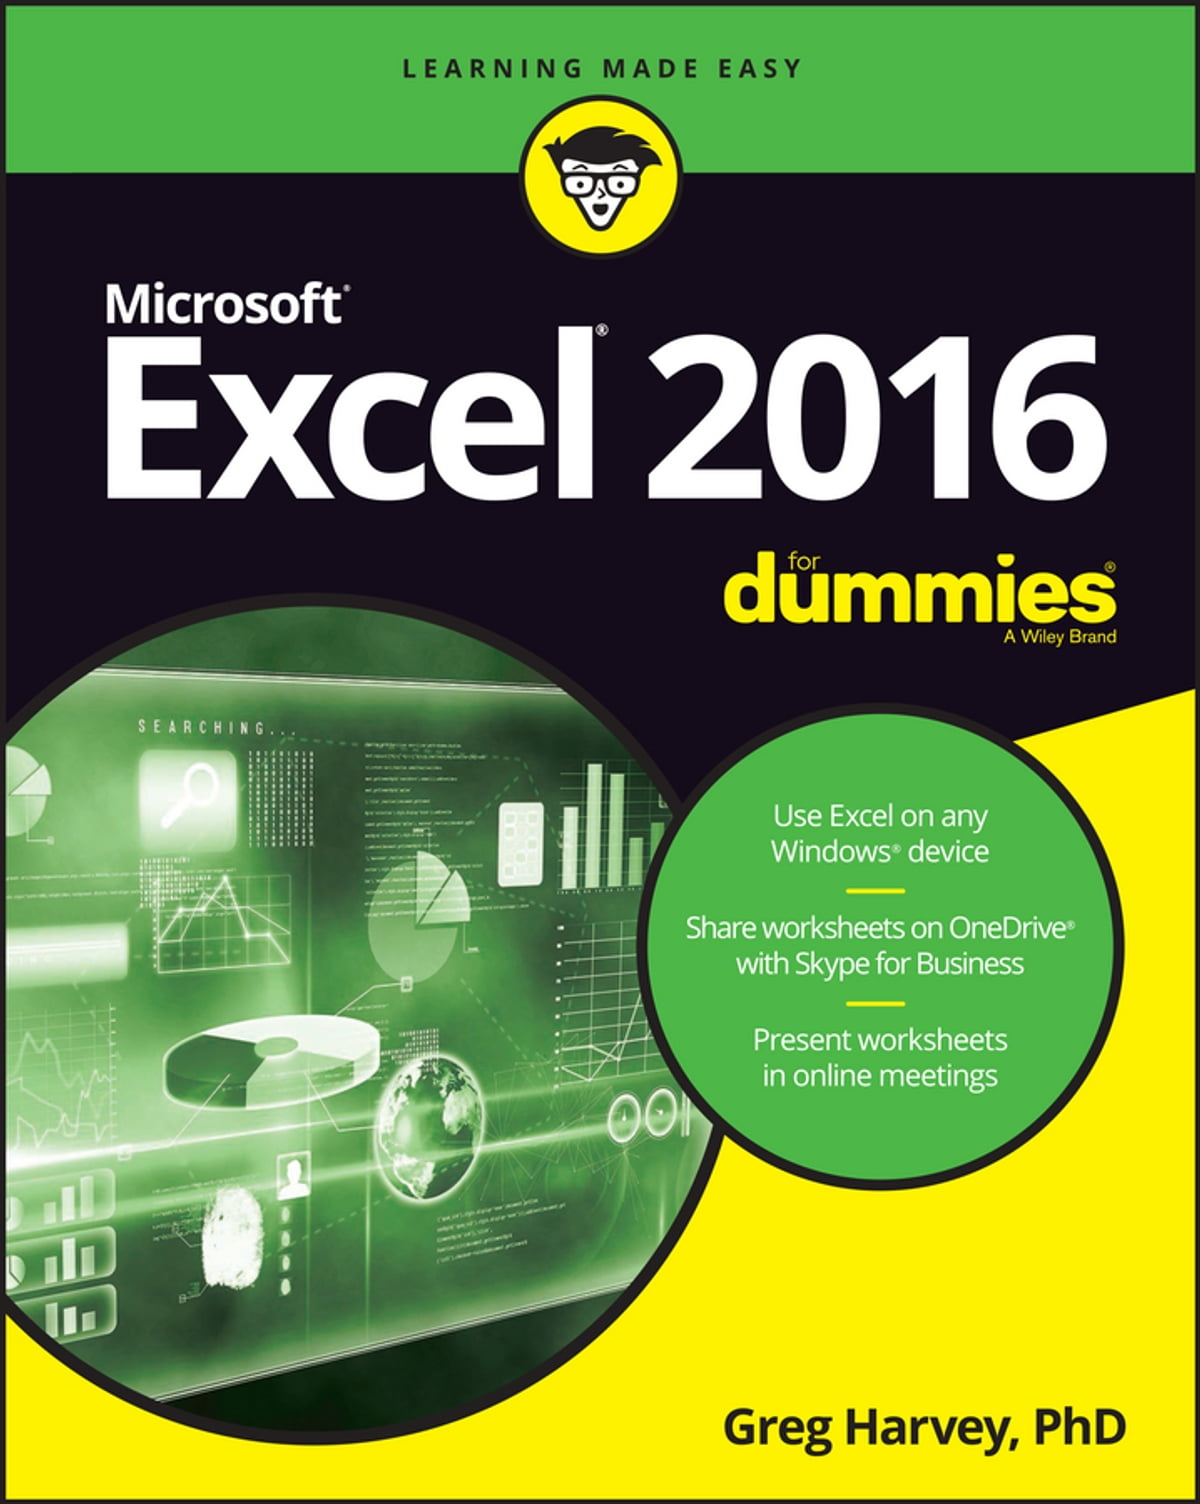 Excel 2016 for dummies ebook by greg harvey 9781119297338 excel 2016 for dummies ebook by greg harvey 9781119297338 rakuten kobo fandeluxe PDF